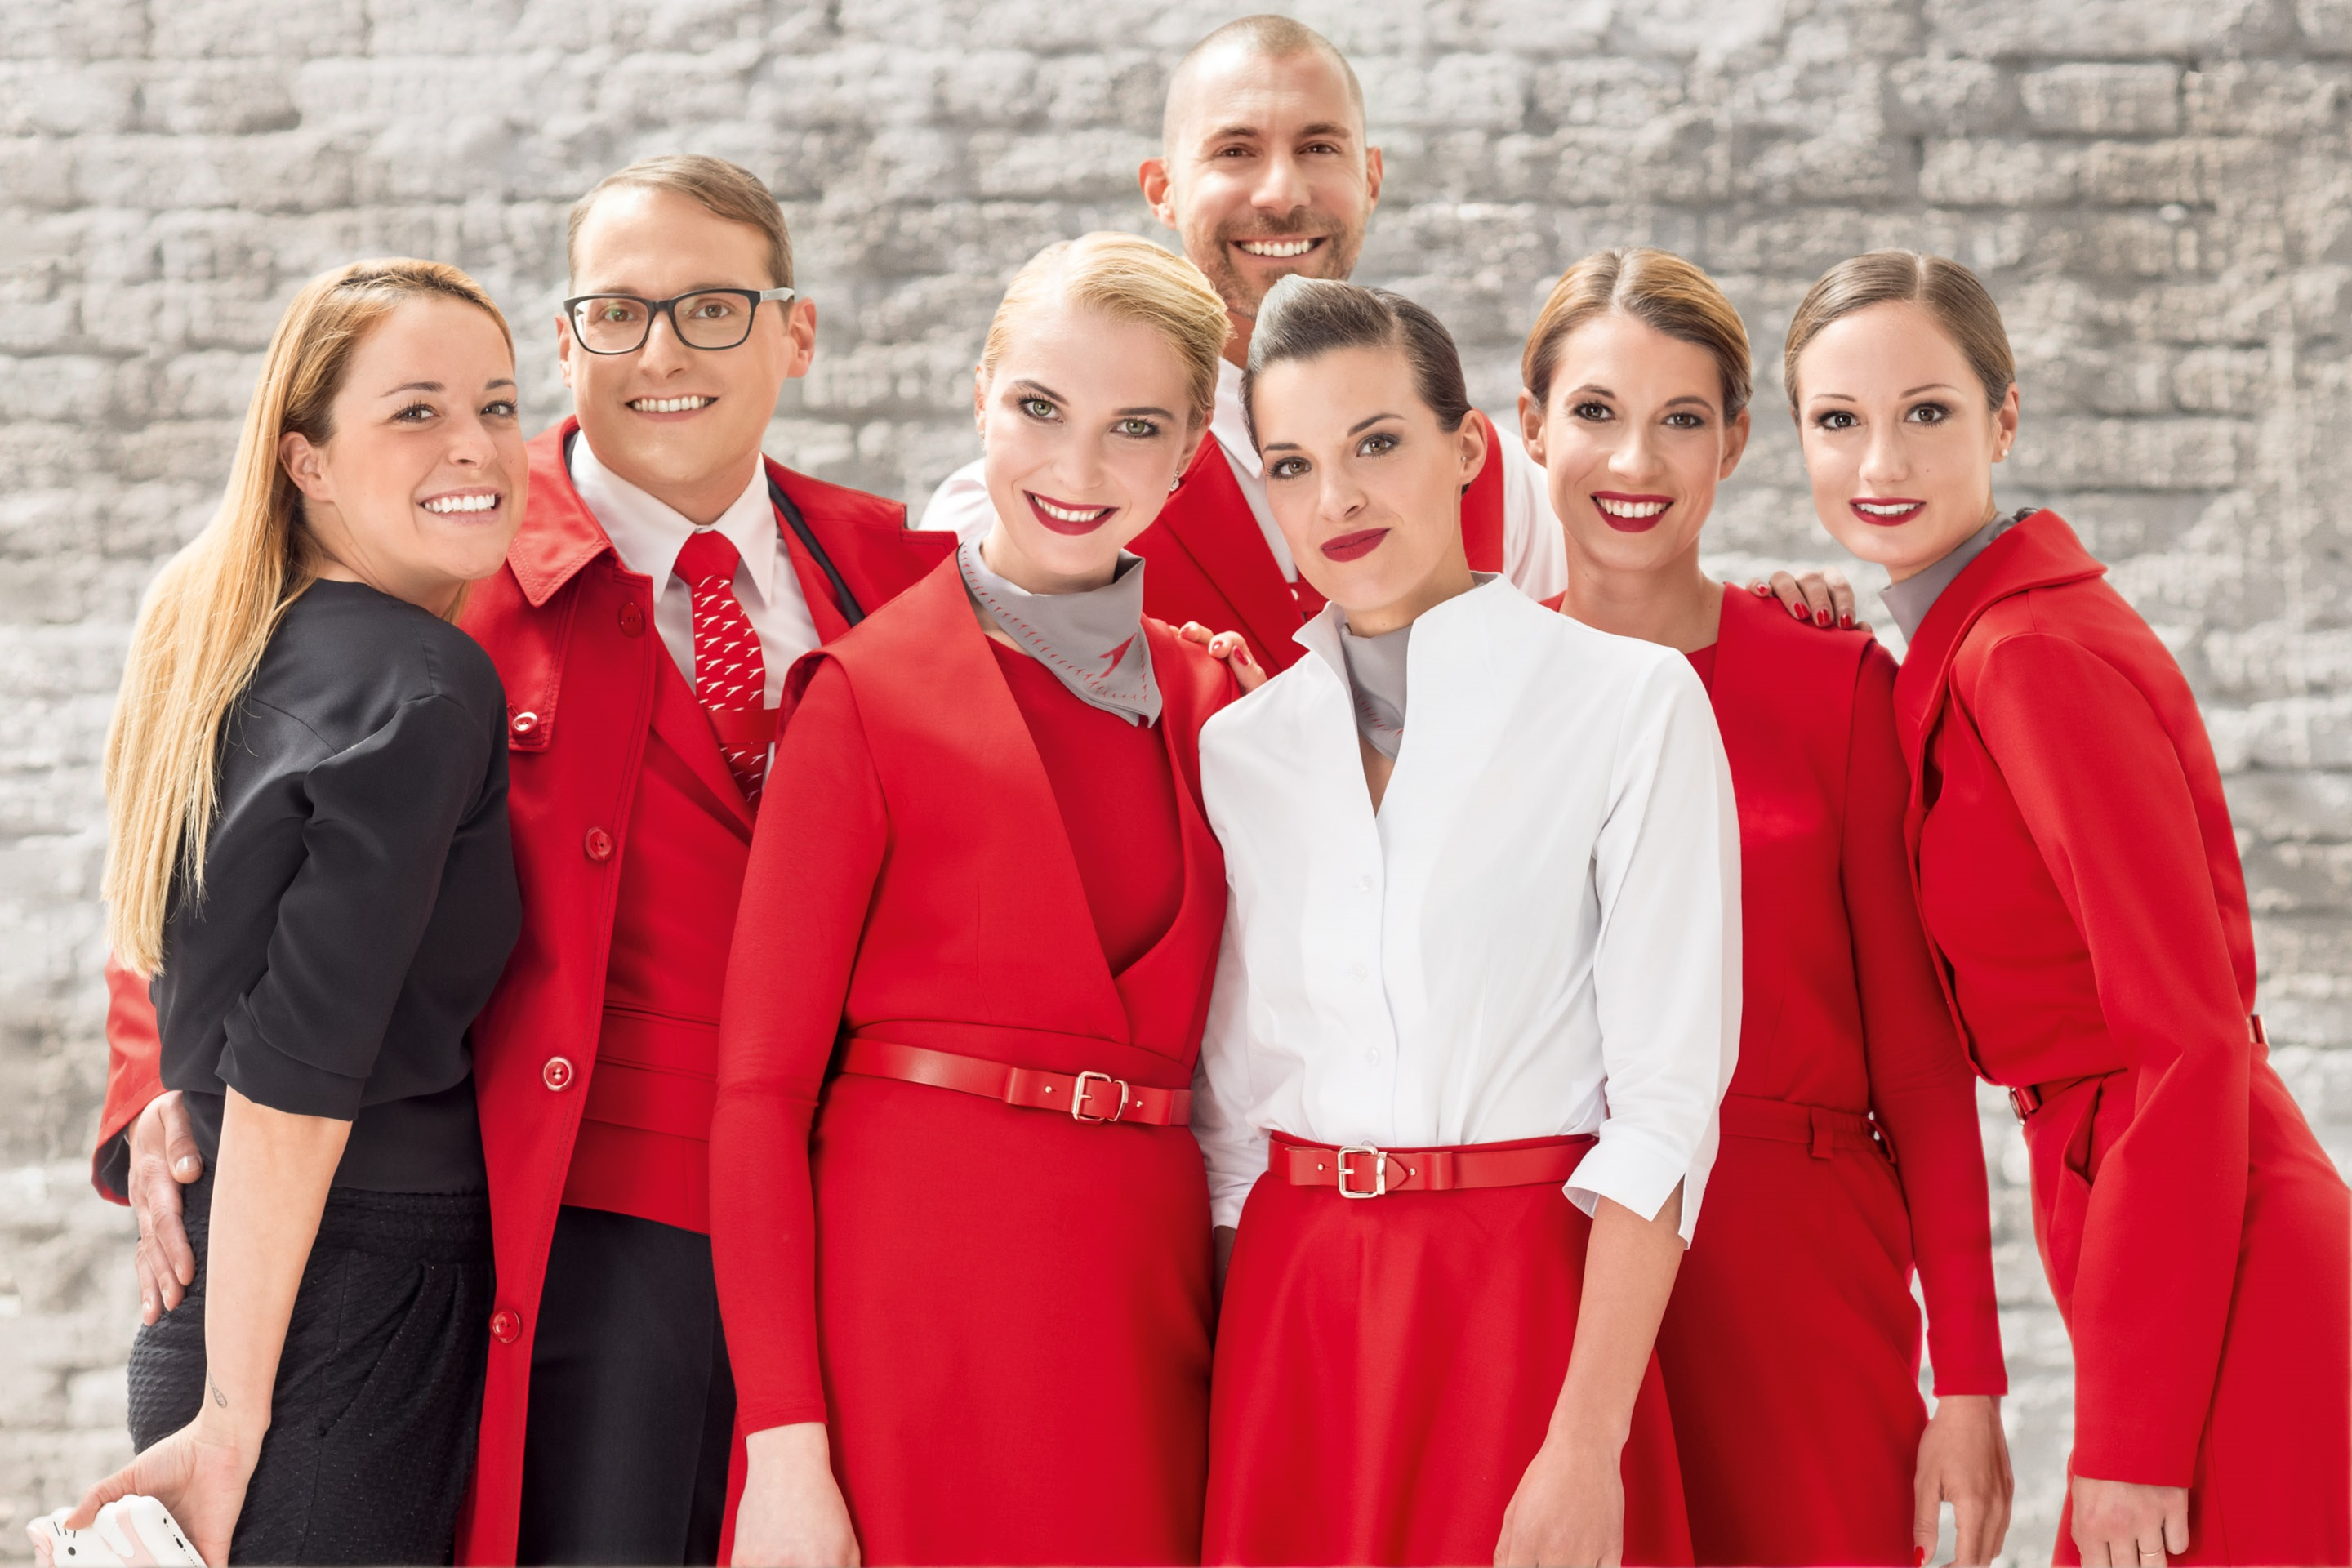 Image result for Austrian Airlines cabin crew uniform new